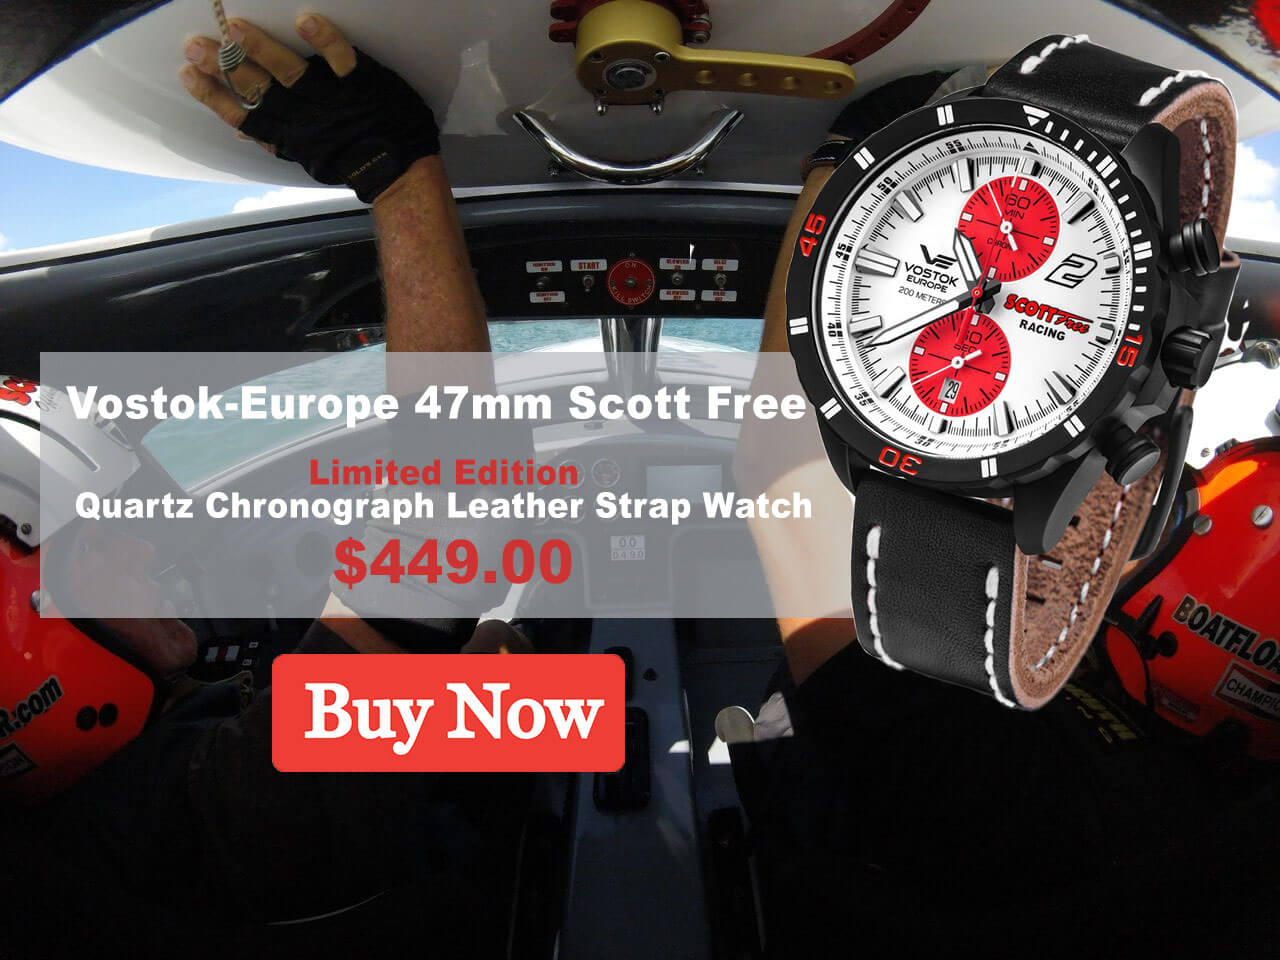 Scott Free Vostok Europe Watch Banner